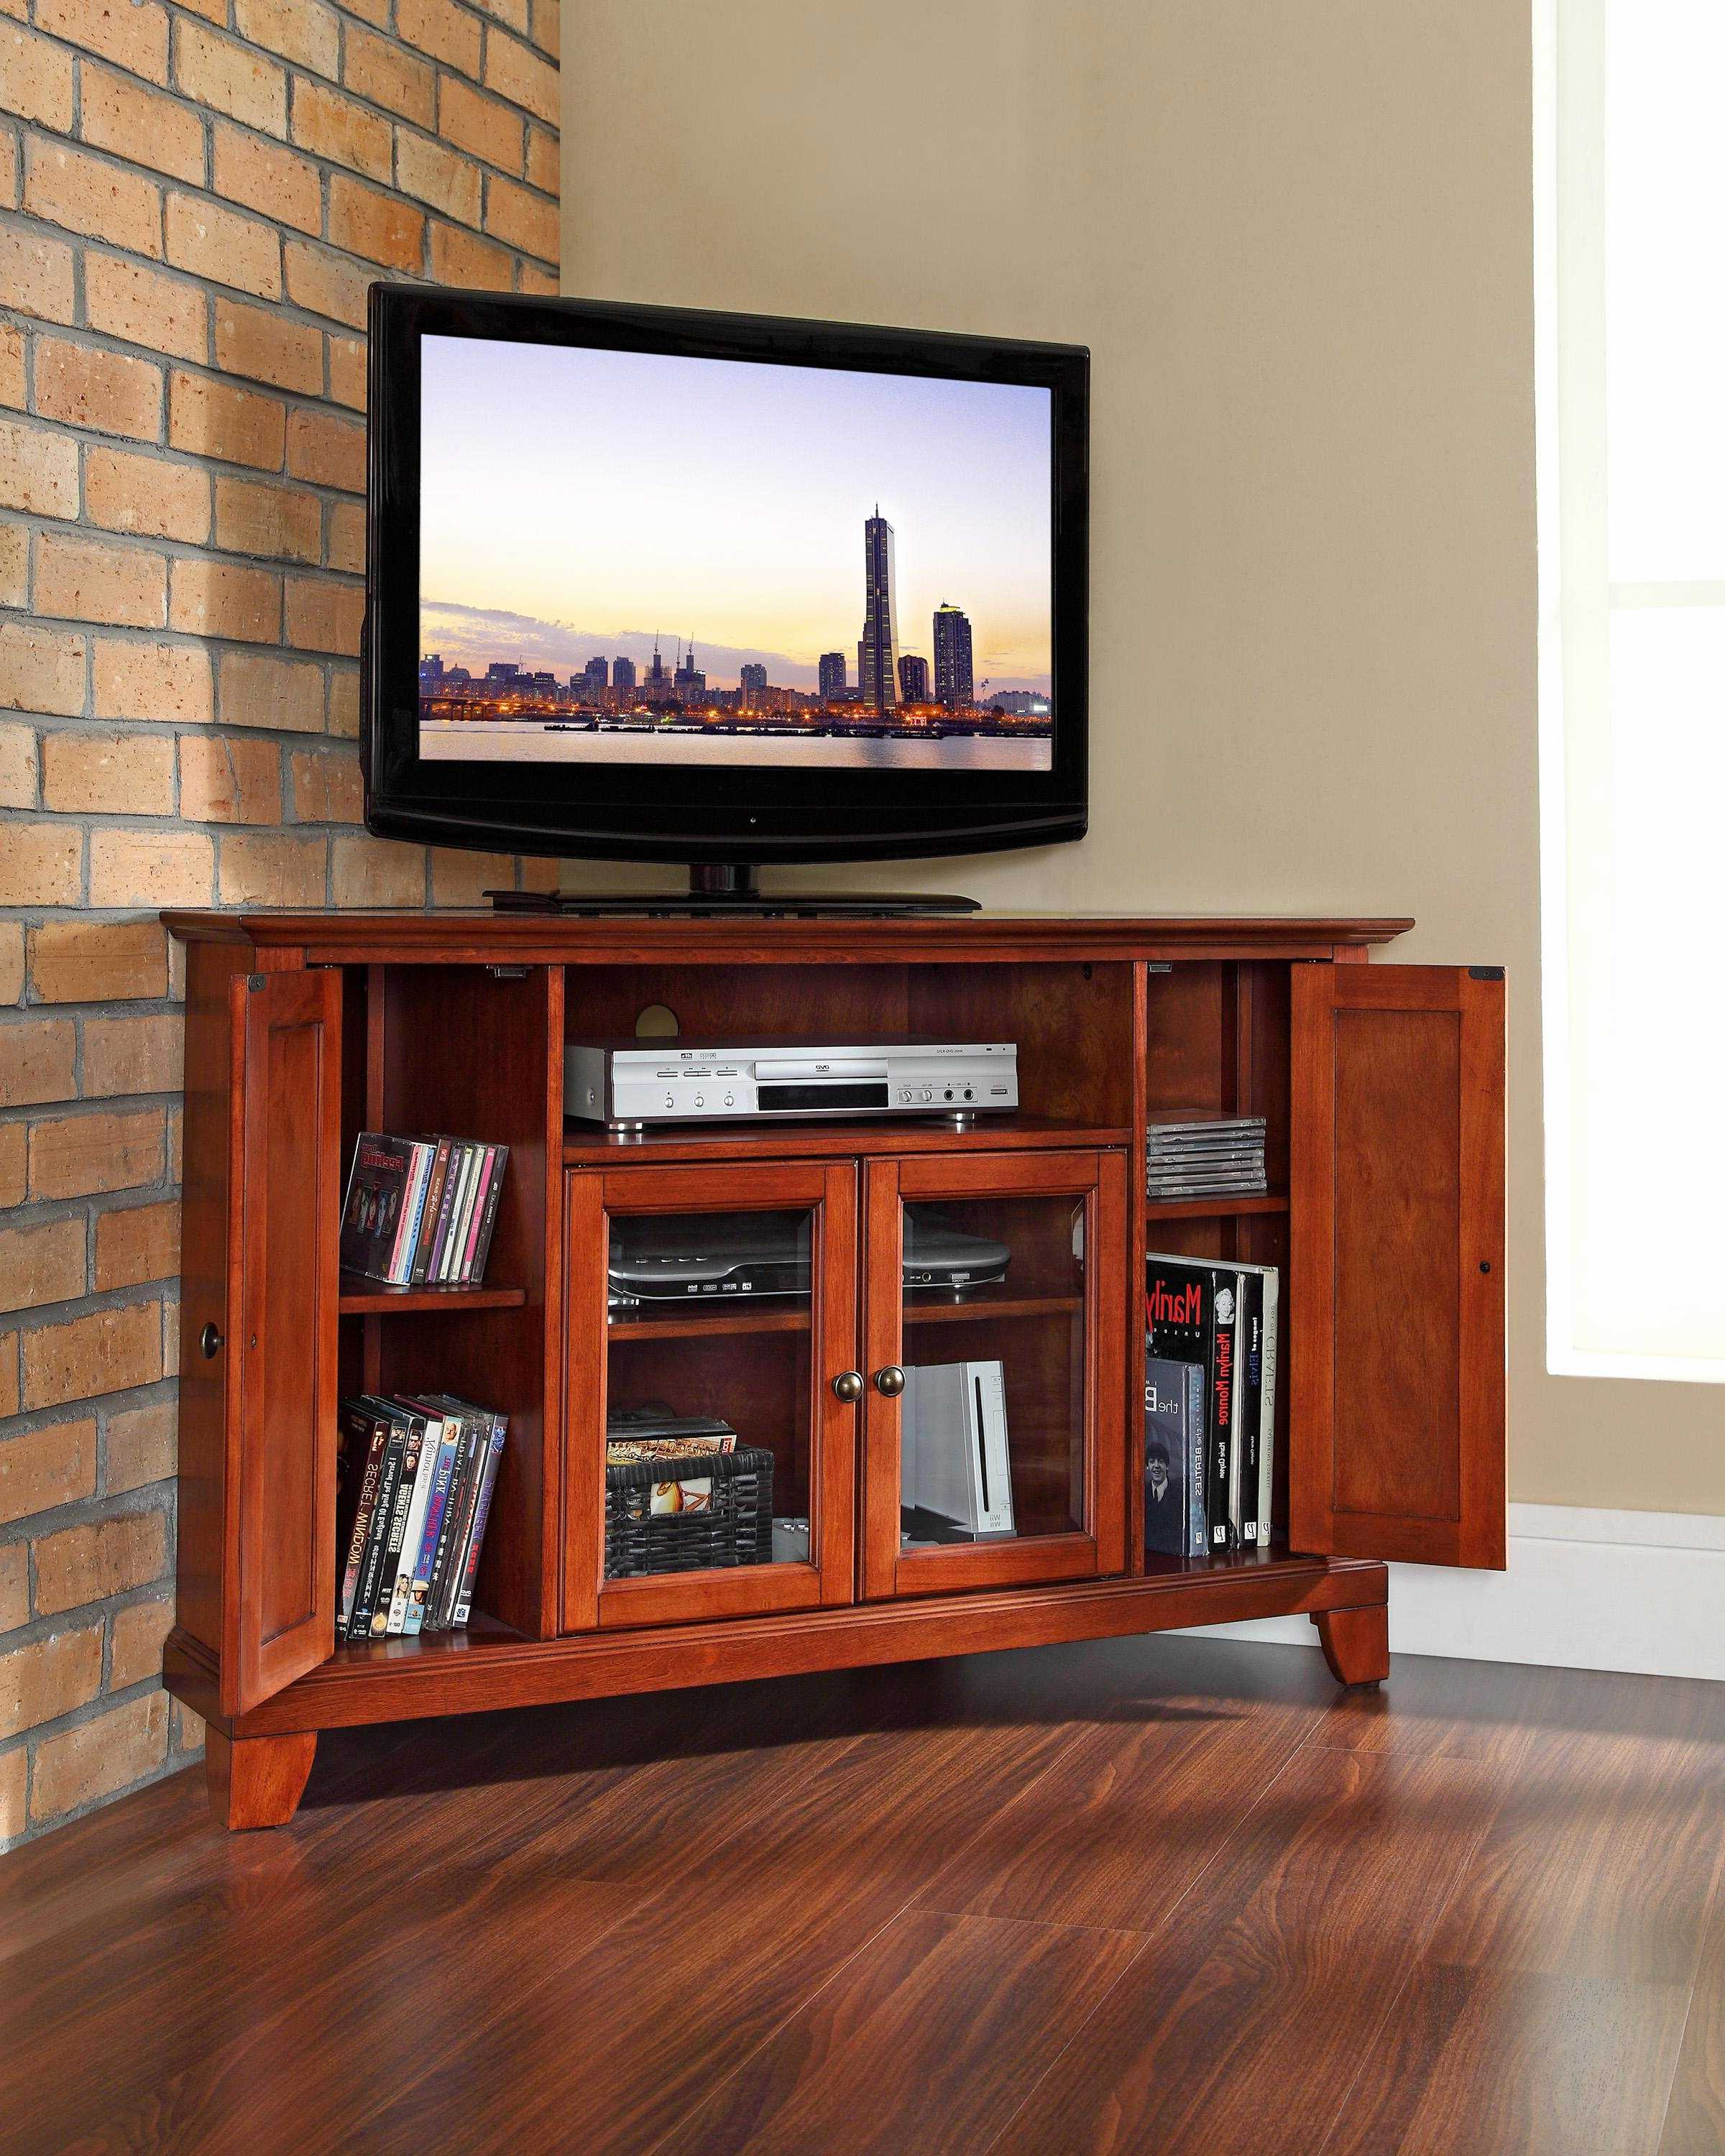 Newest Corner Tv Stands For 60 Inch Flat Screens With Corner Tv Stand For 60 Inch Flat Screen 65 Costco Fireplace Amazon (View 12 of 20)